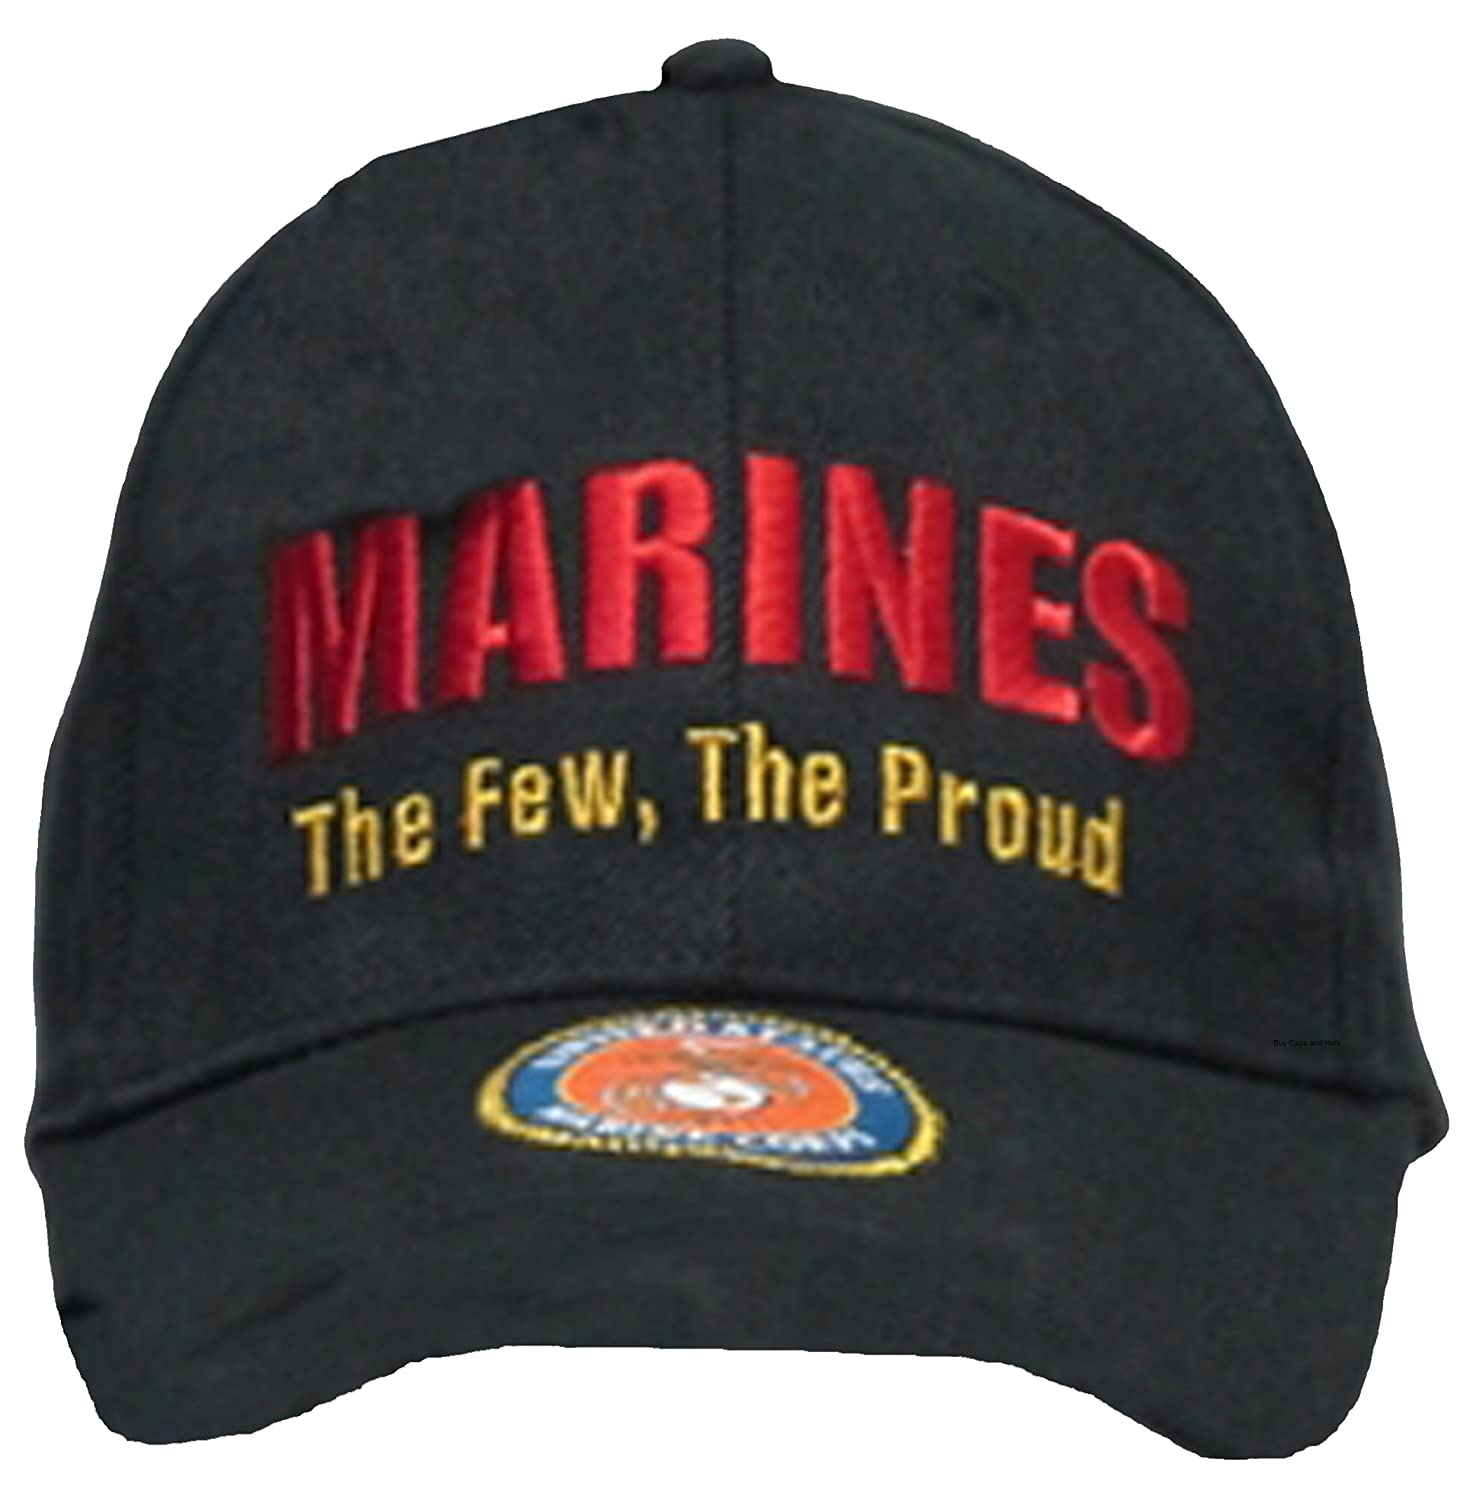 Buy Caps and Hats U.S. Marine Corps USMC Insignia Hat Cap Black Marines US  Military Baseball Caps 9def328a520